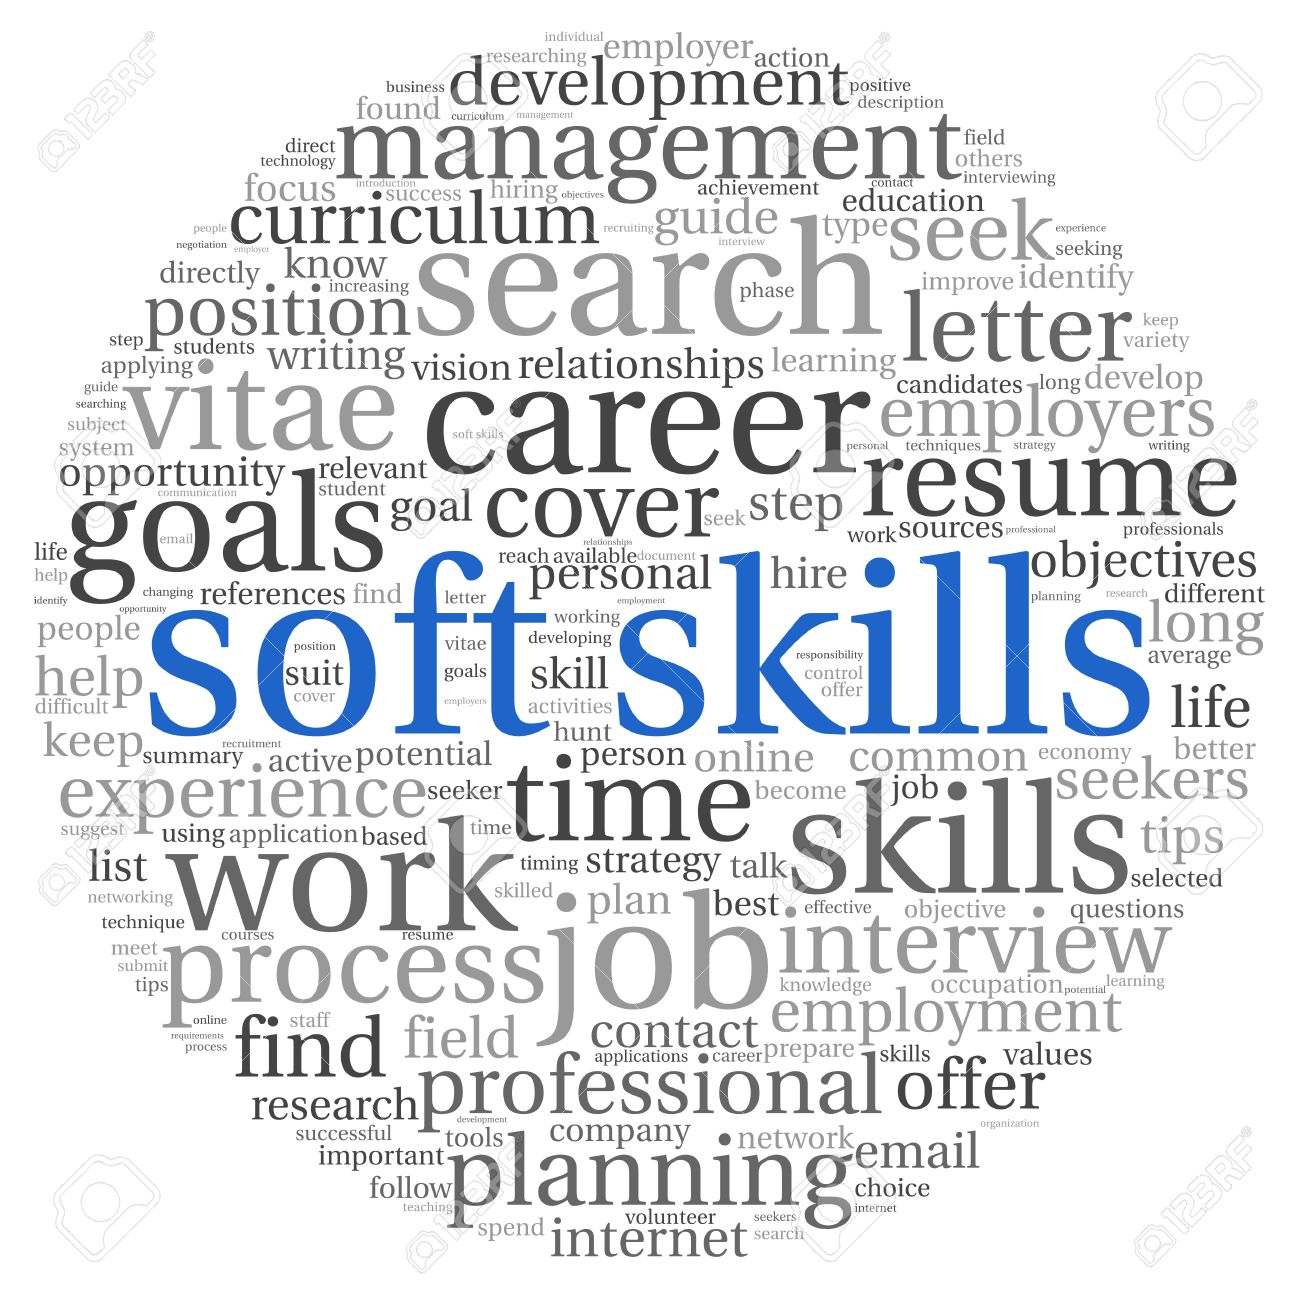 Soft Skills Training Companies